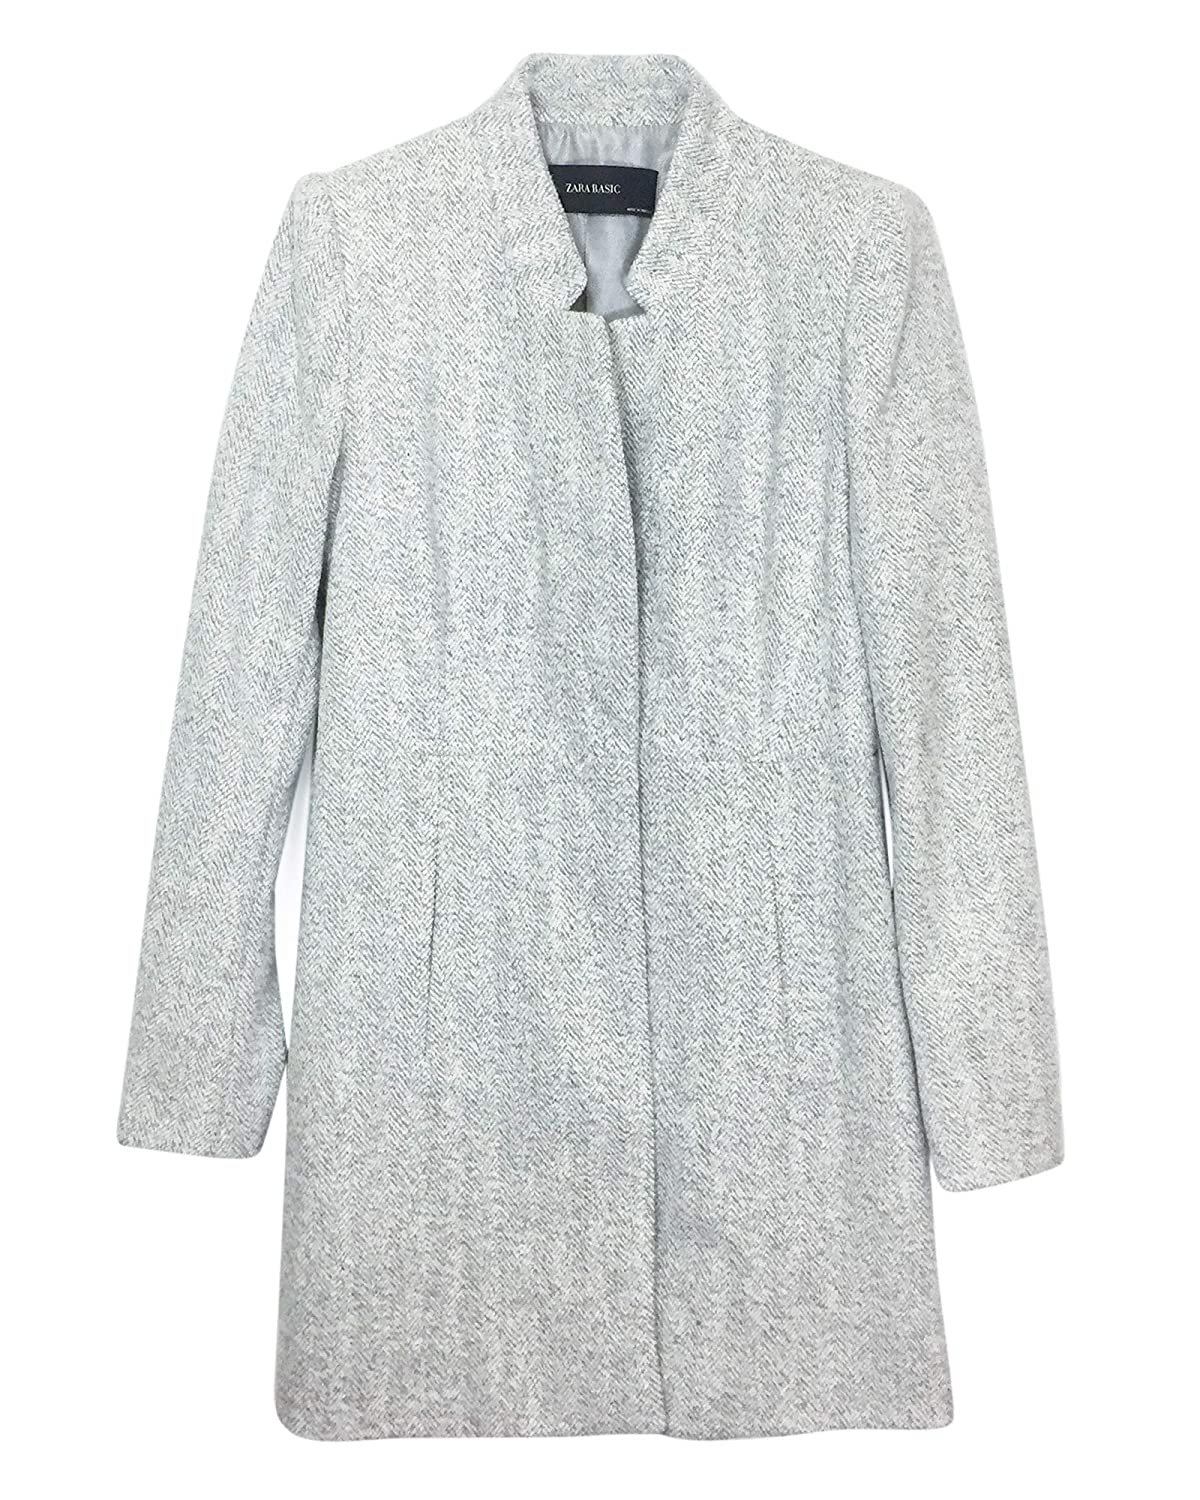 6c8157e0 Zara Women's Inverted Lapel Frock Coat 7988/876: Amazon.co.uk: Clothing